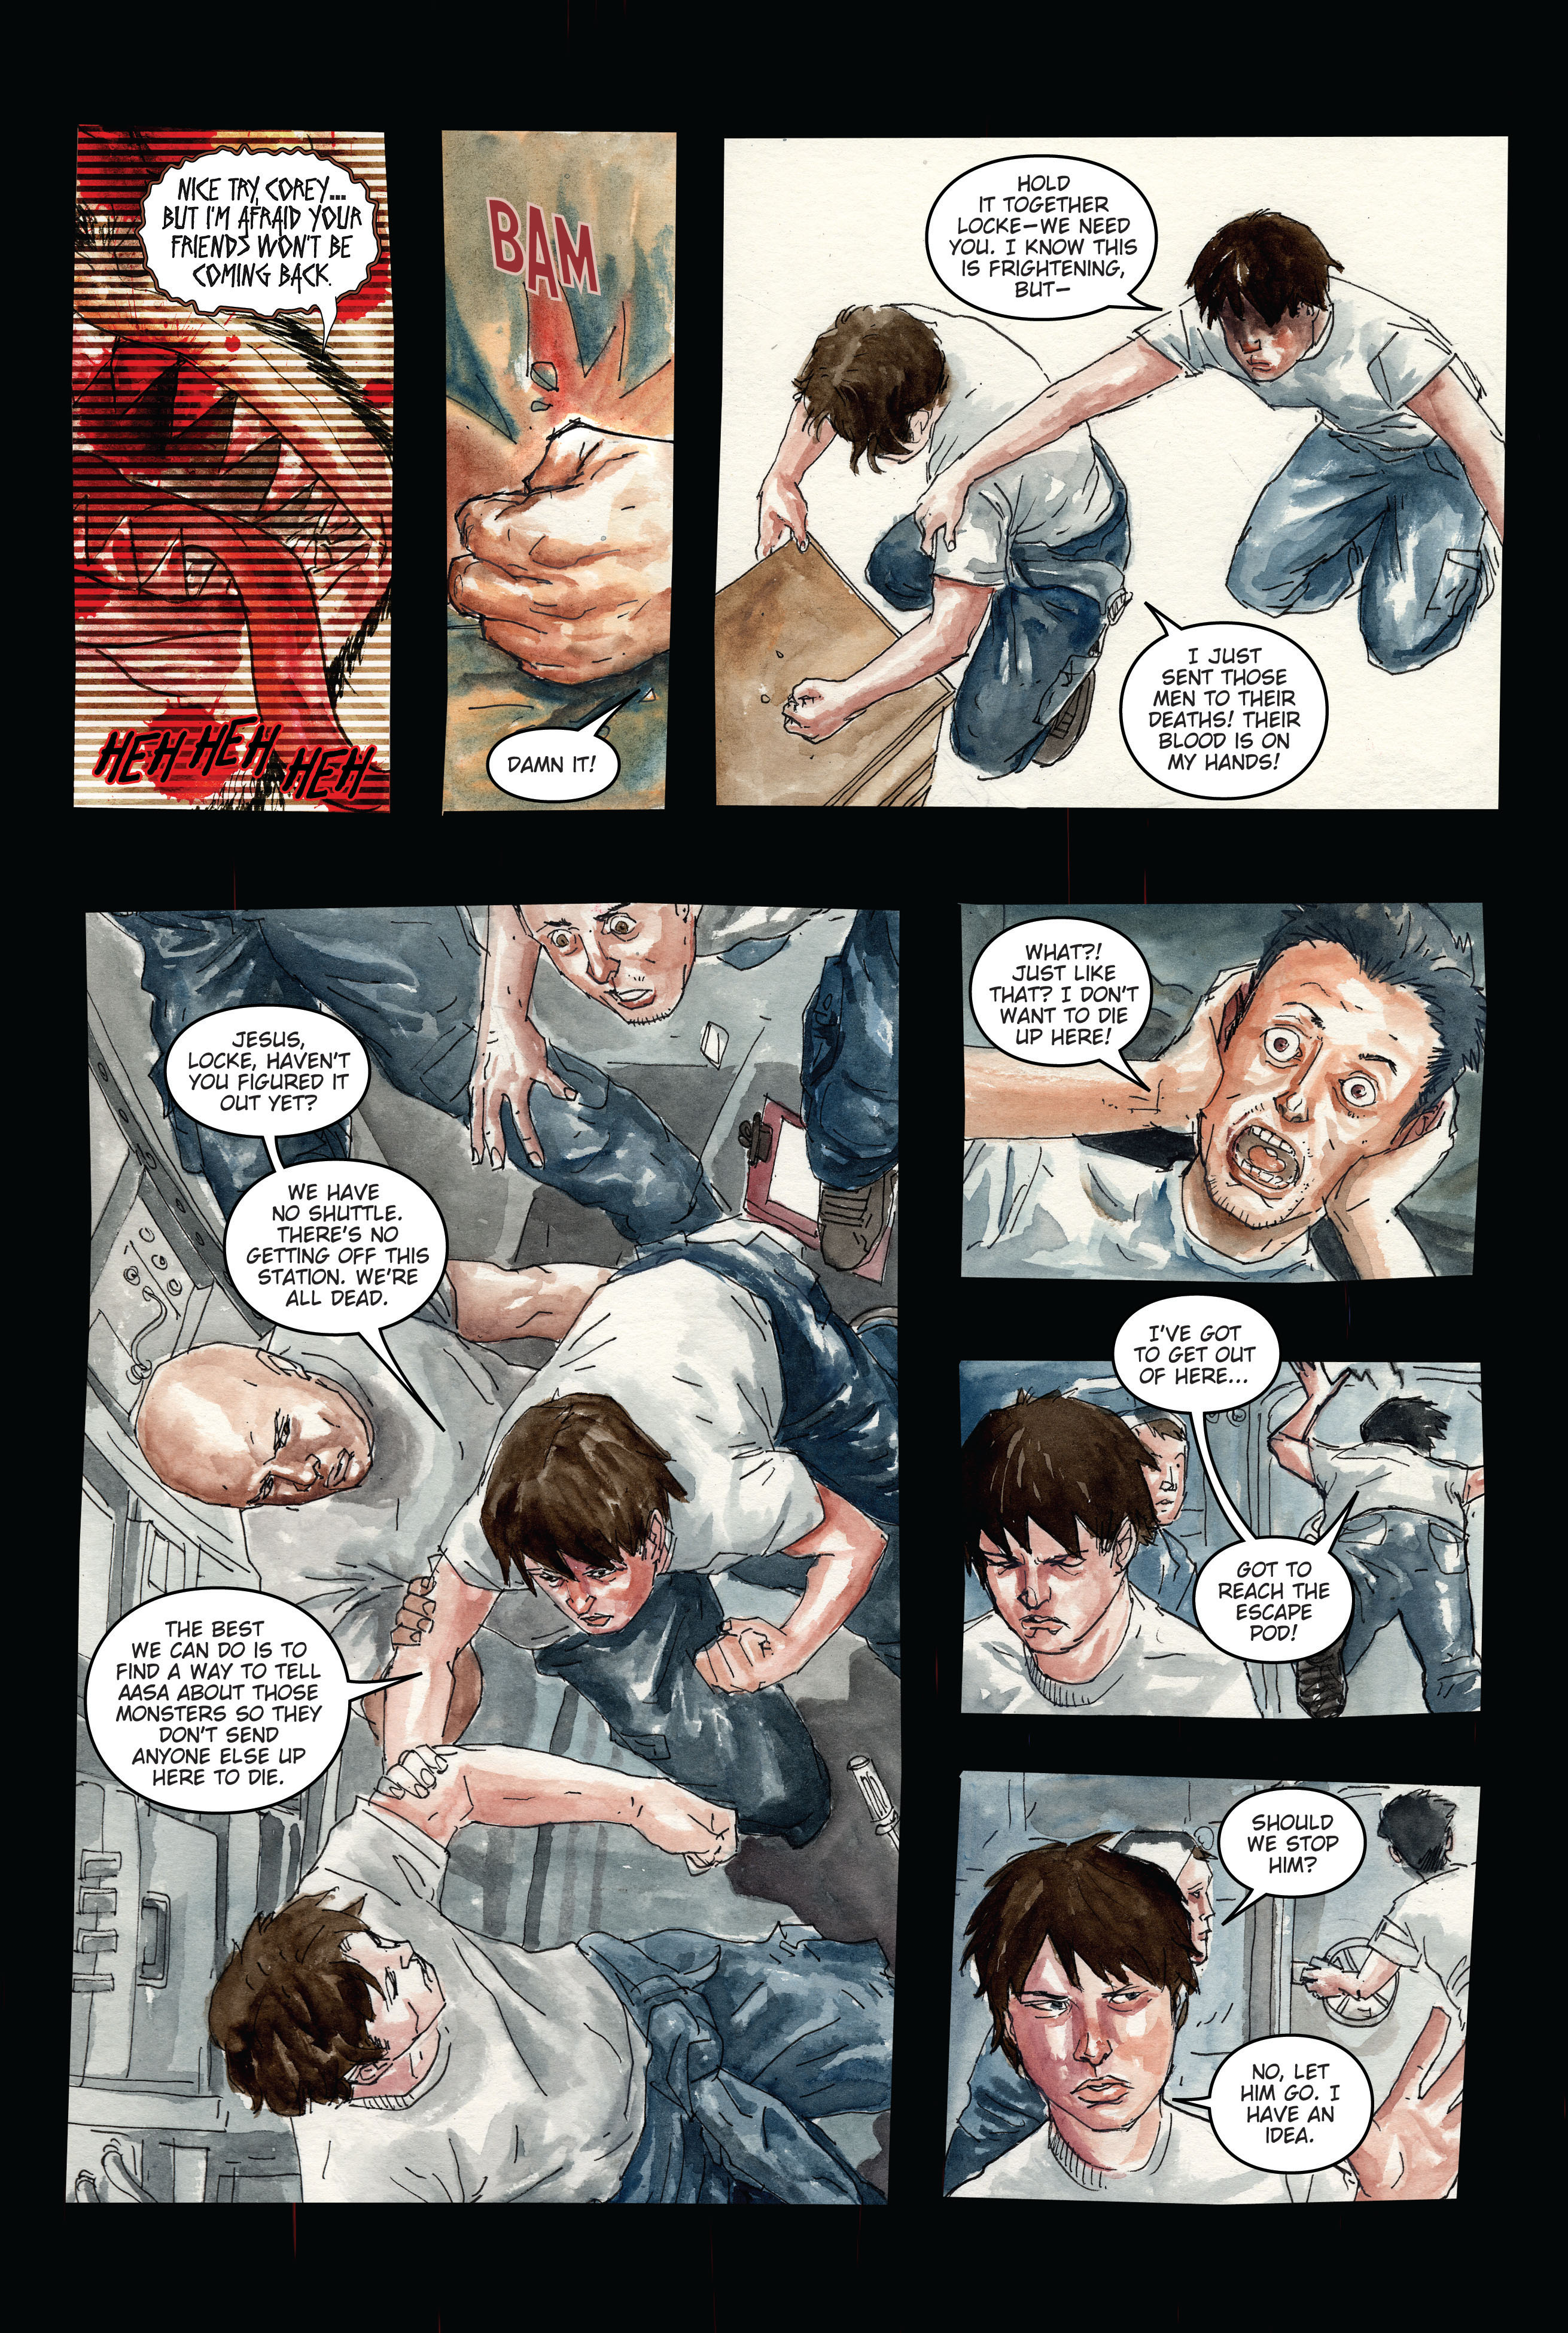 30 Days of Night: Dead Space 3 Page 4